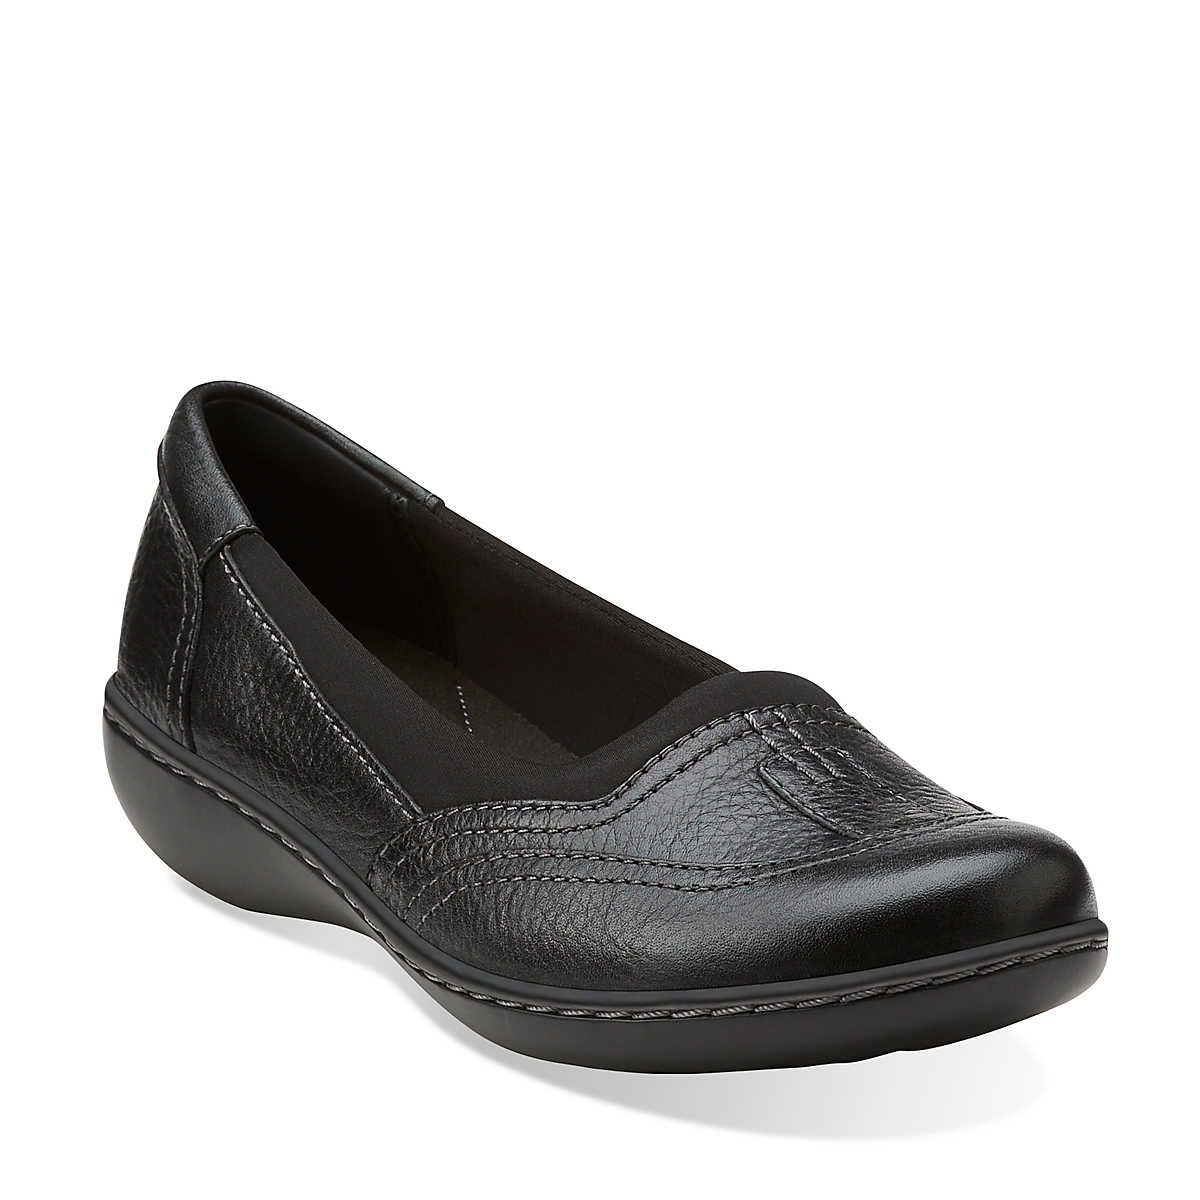 Ashland Hustle in Black Leather Womens Shoes from Clarks